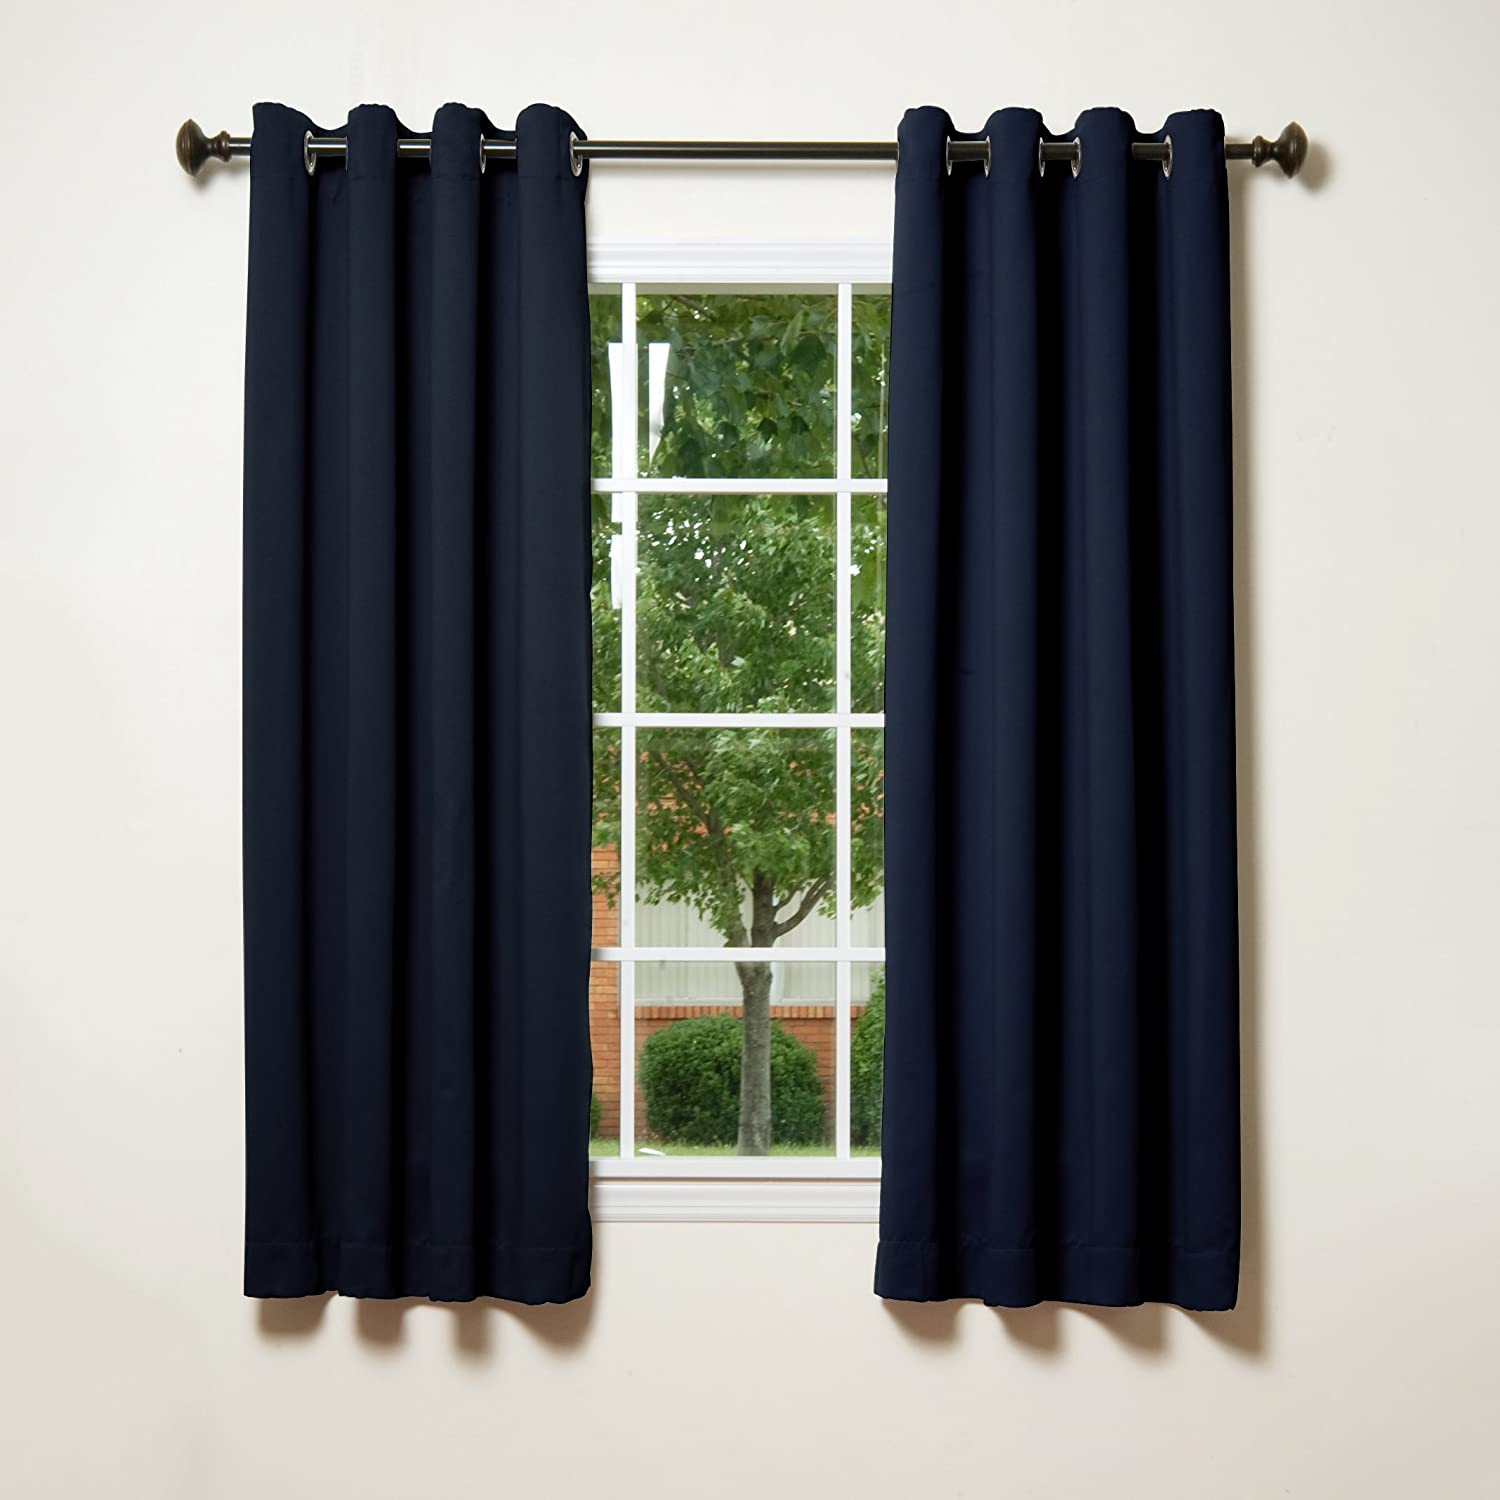 Insulated Thermal Curtains Images